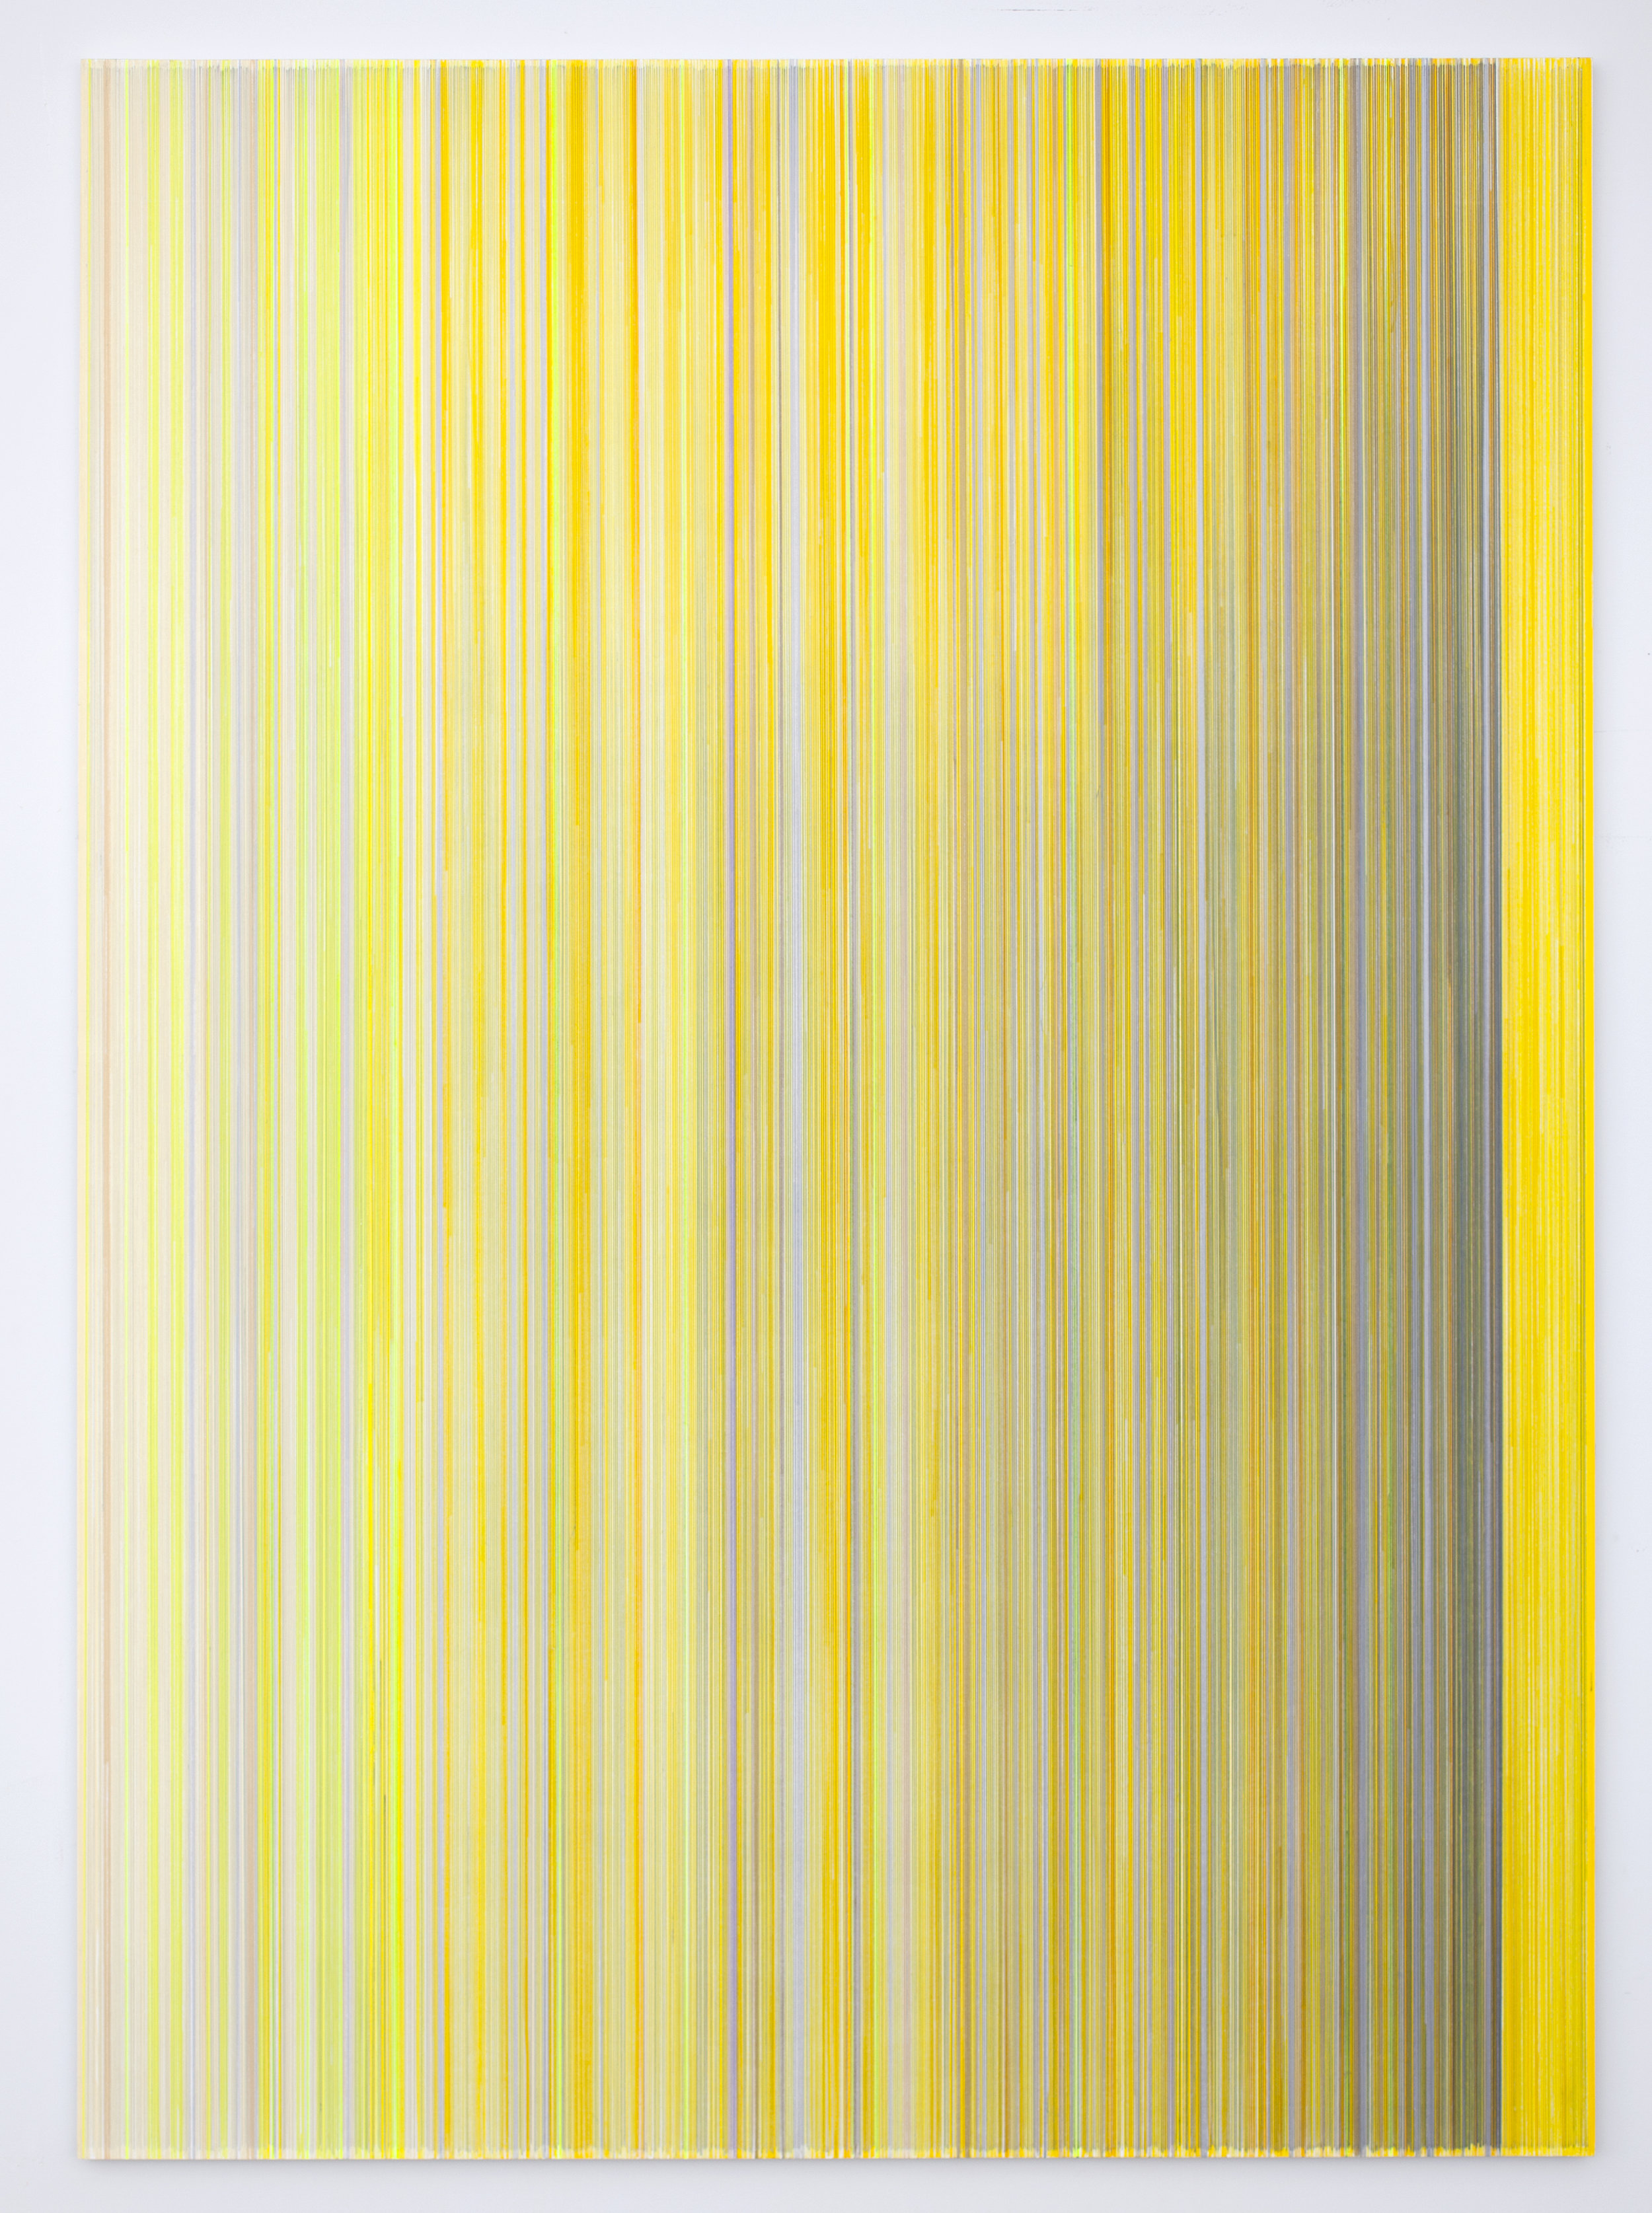 sound I saw   2018 graphite and colored pencil on mat board 70 by 50 inches title from Teju Cole's poem  Brienzersee,  published in  Blind Spot , page 120